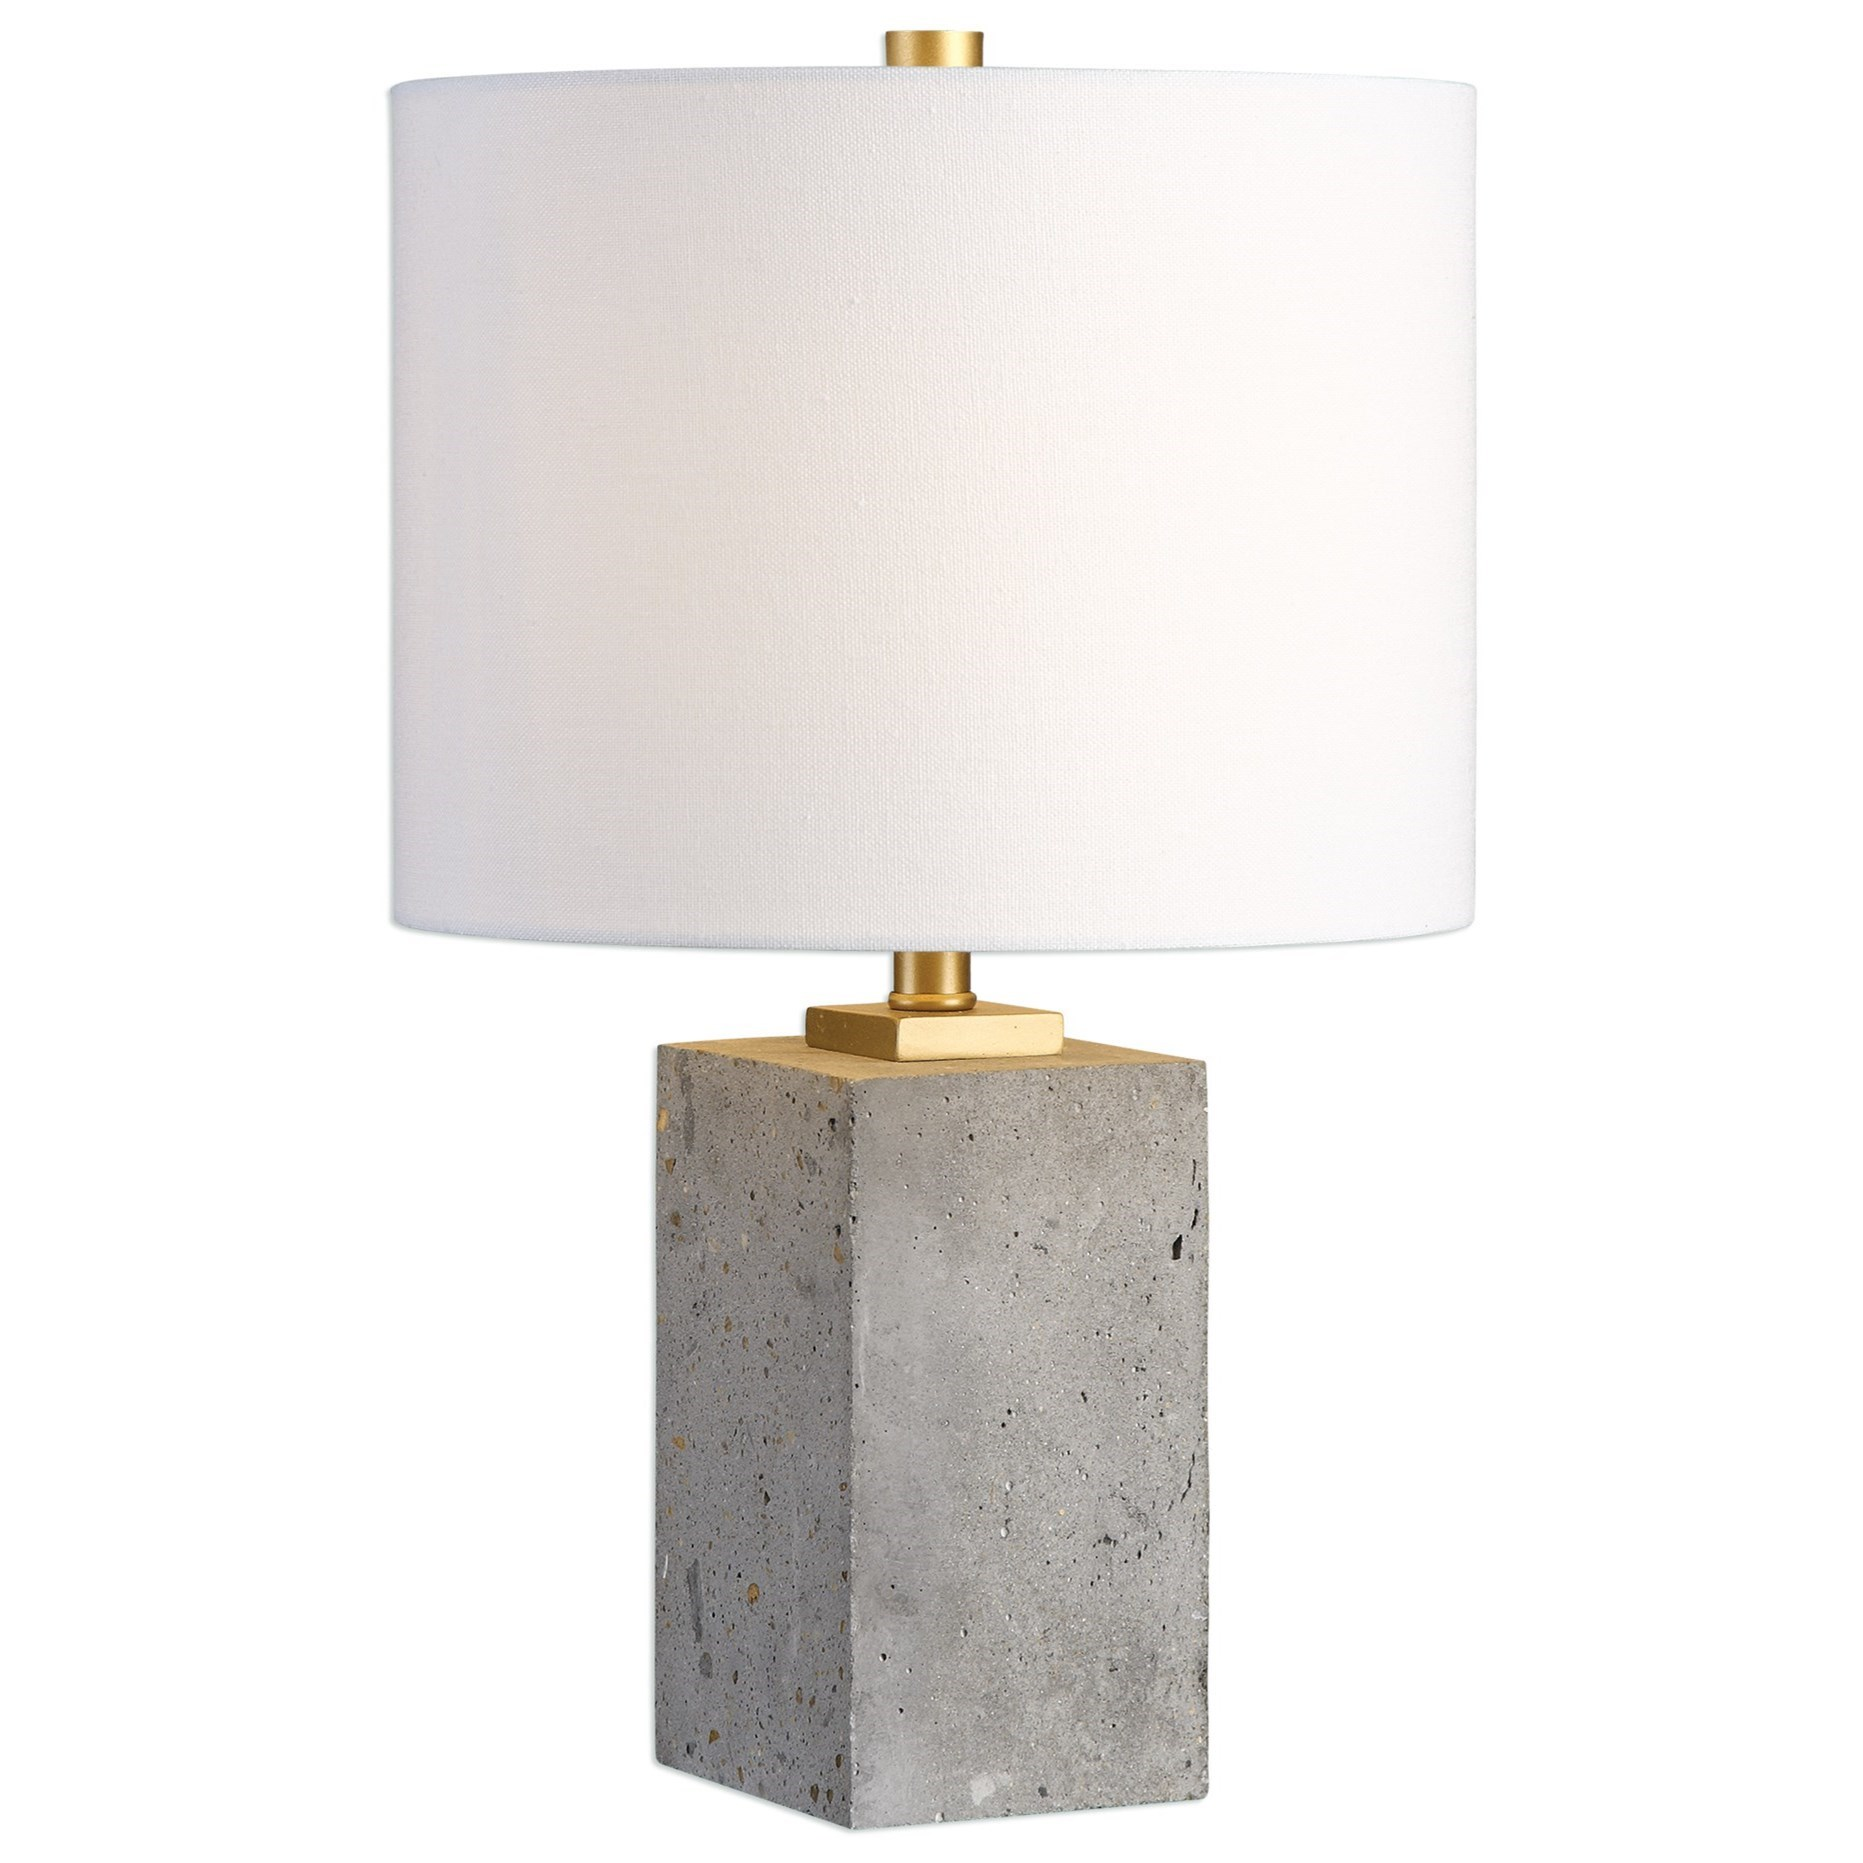 Accent Lamps Drexel Accent Lamp by Uttermost at O'Dunk & O'Bright Furniture